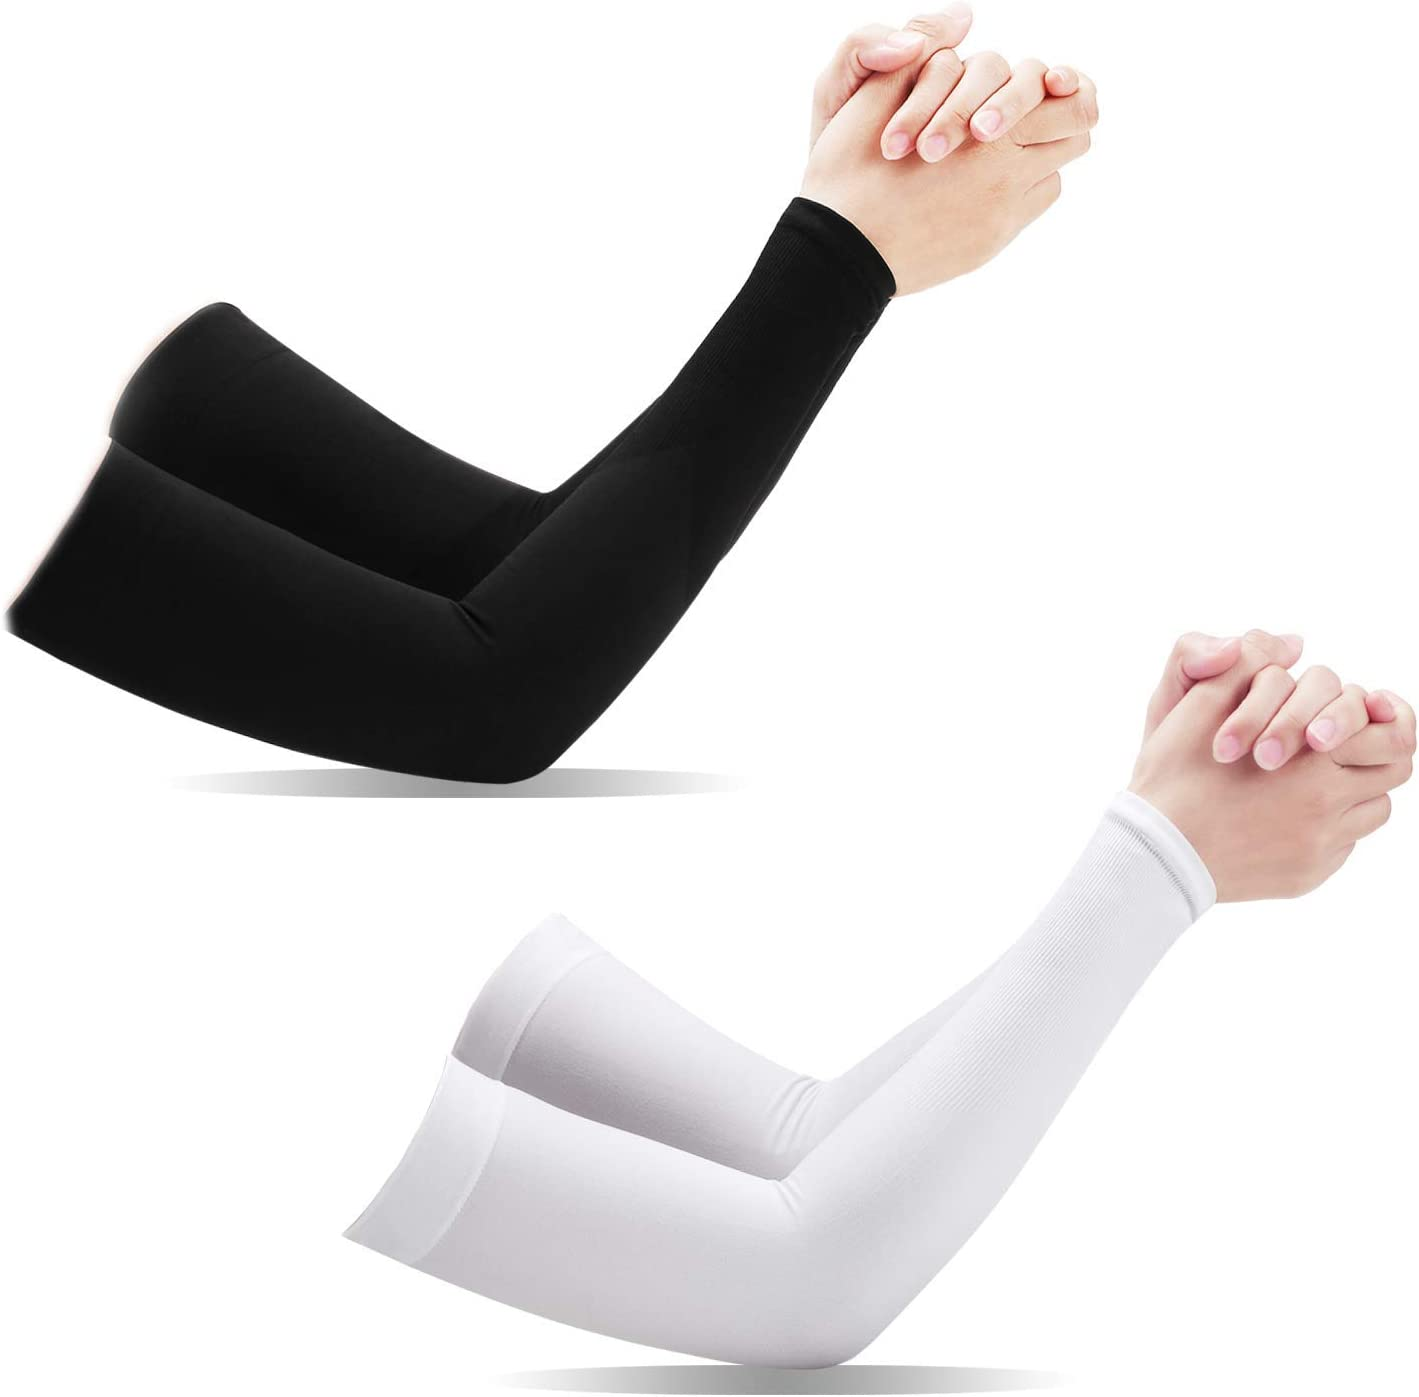 [ 2 Pairs ] UV Protection Cooling Arm Sleeves, T Tersely Arm Warmers for Men Women Youth Arm Support for Cycling Baseball Basketball Driving,Arm Compression Sleeves-Black White,One Size Fit Most